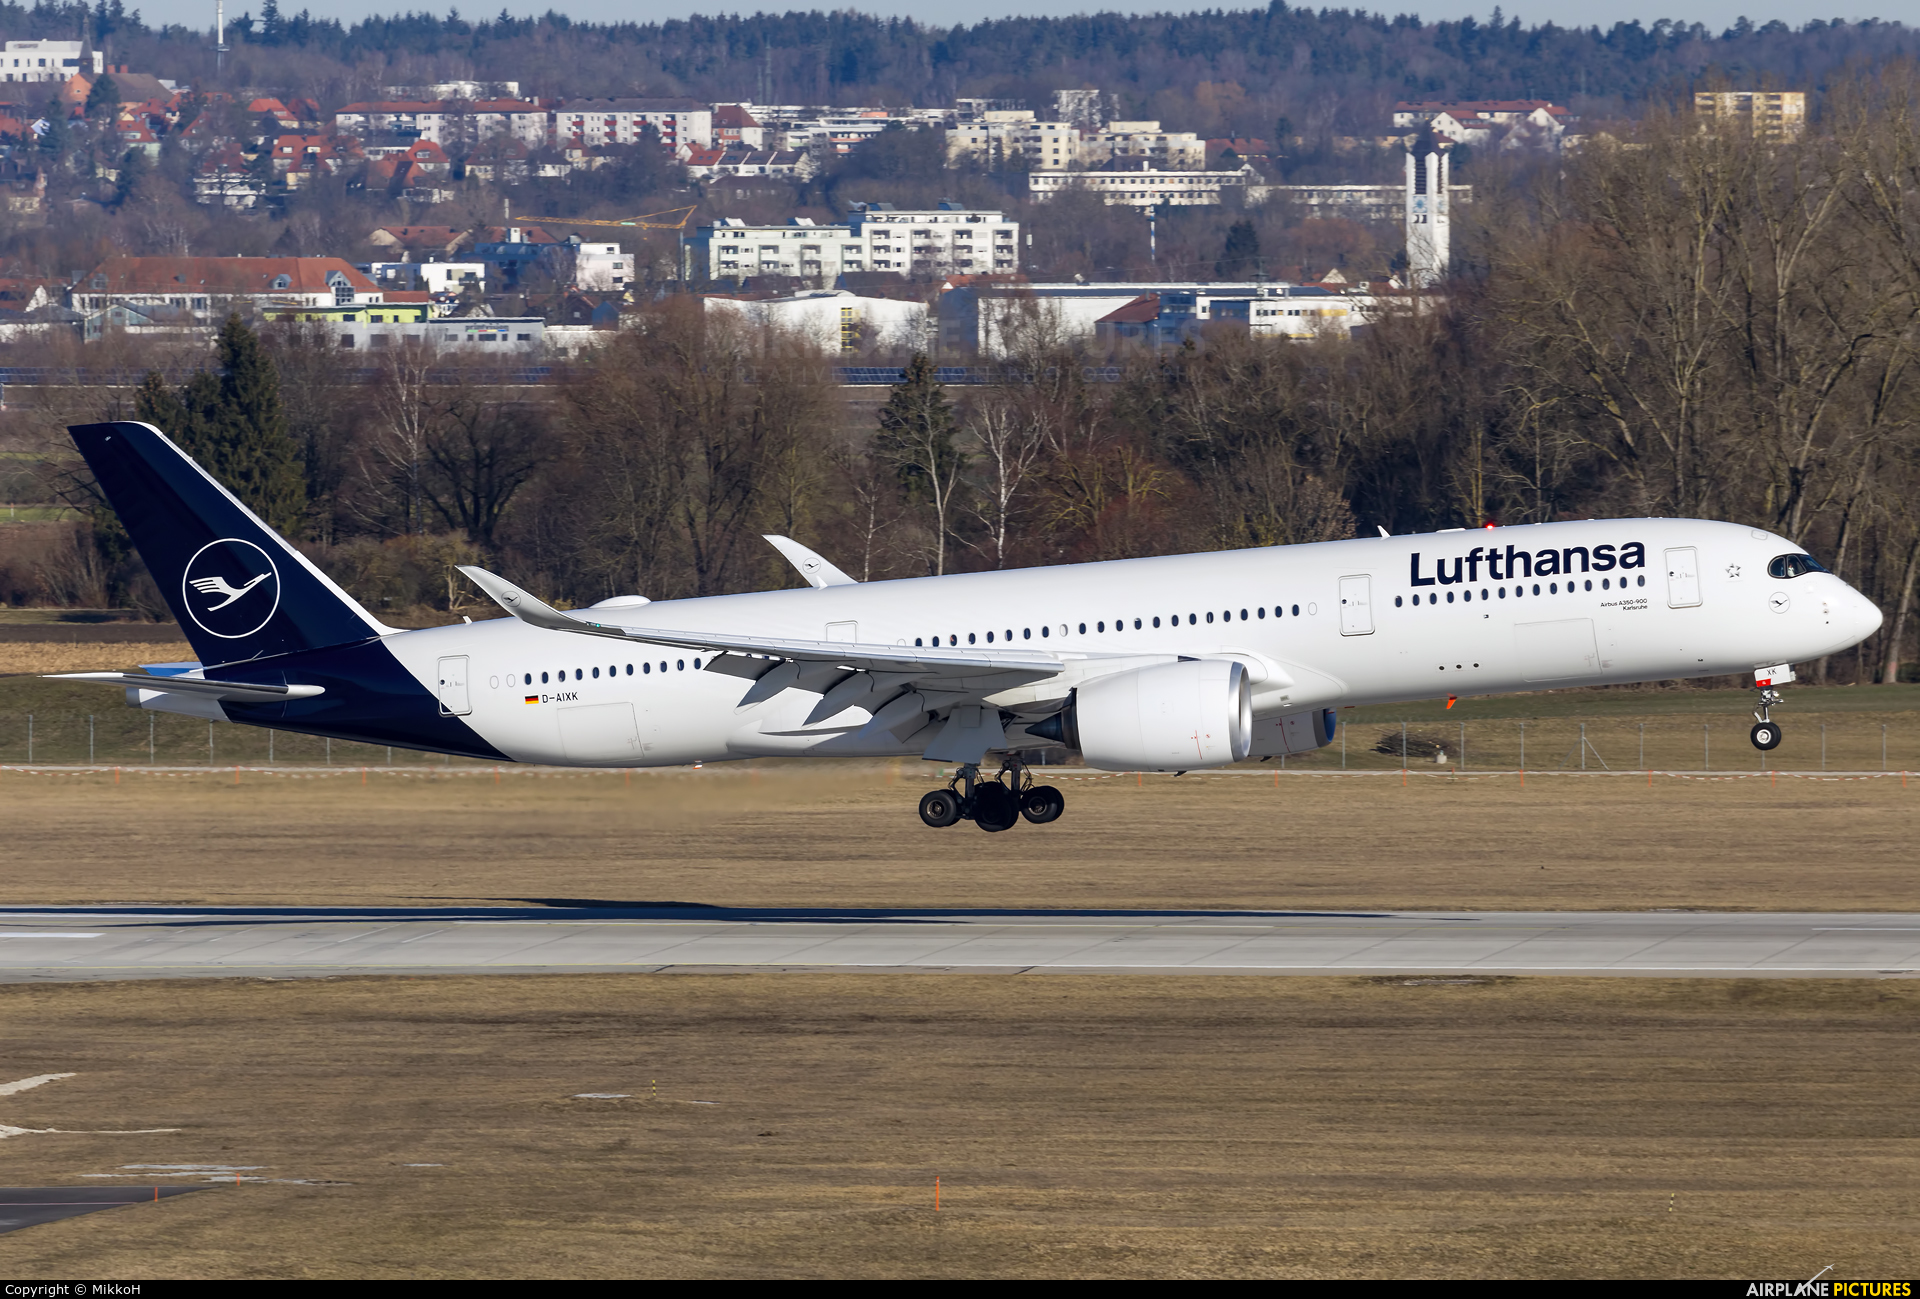 Lufthansa D-AIXK aircraft at Munich